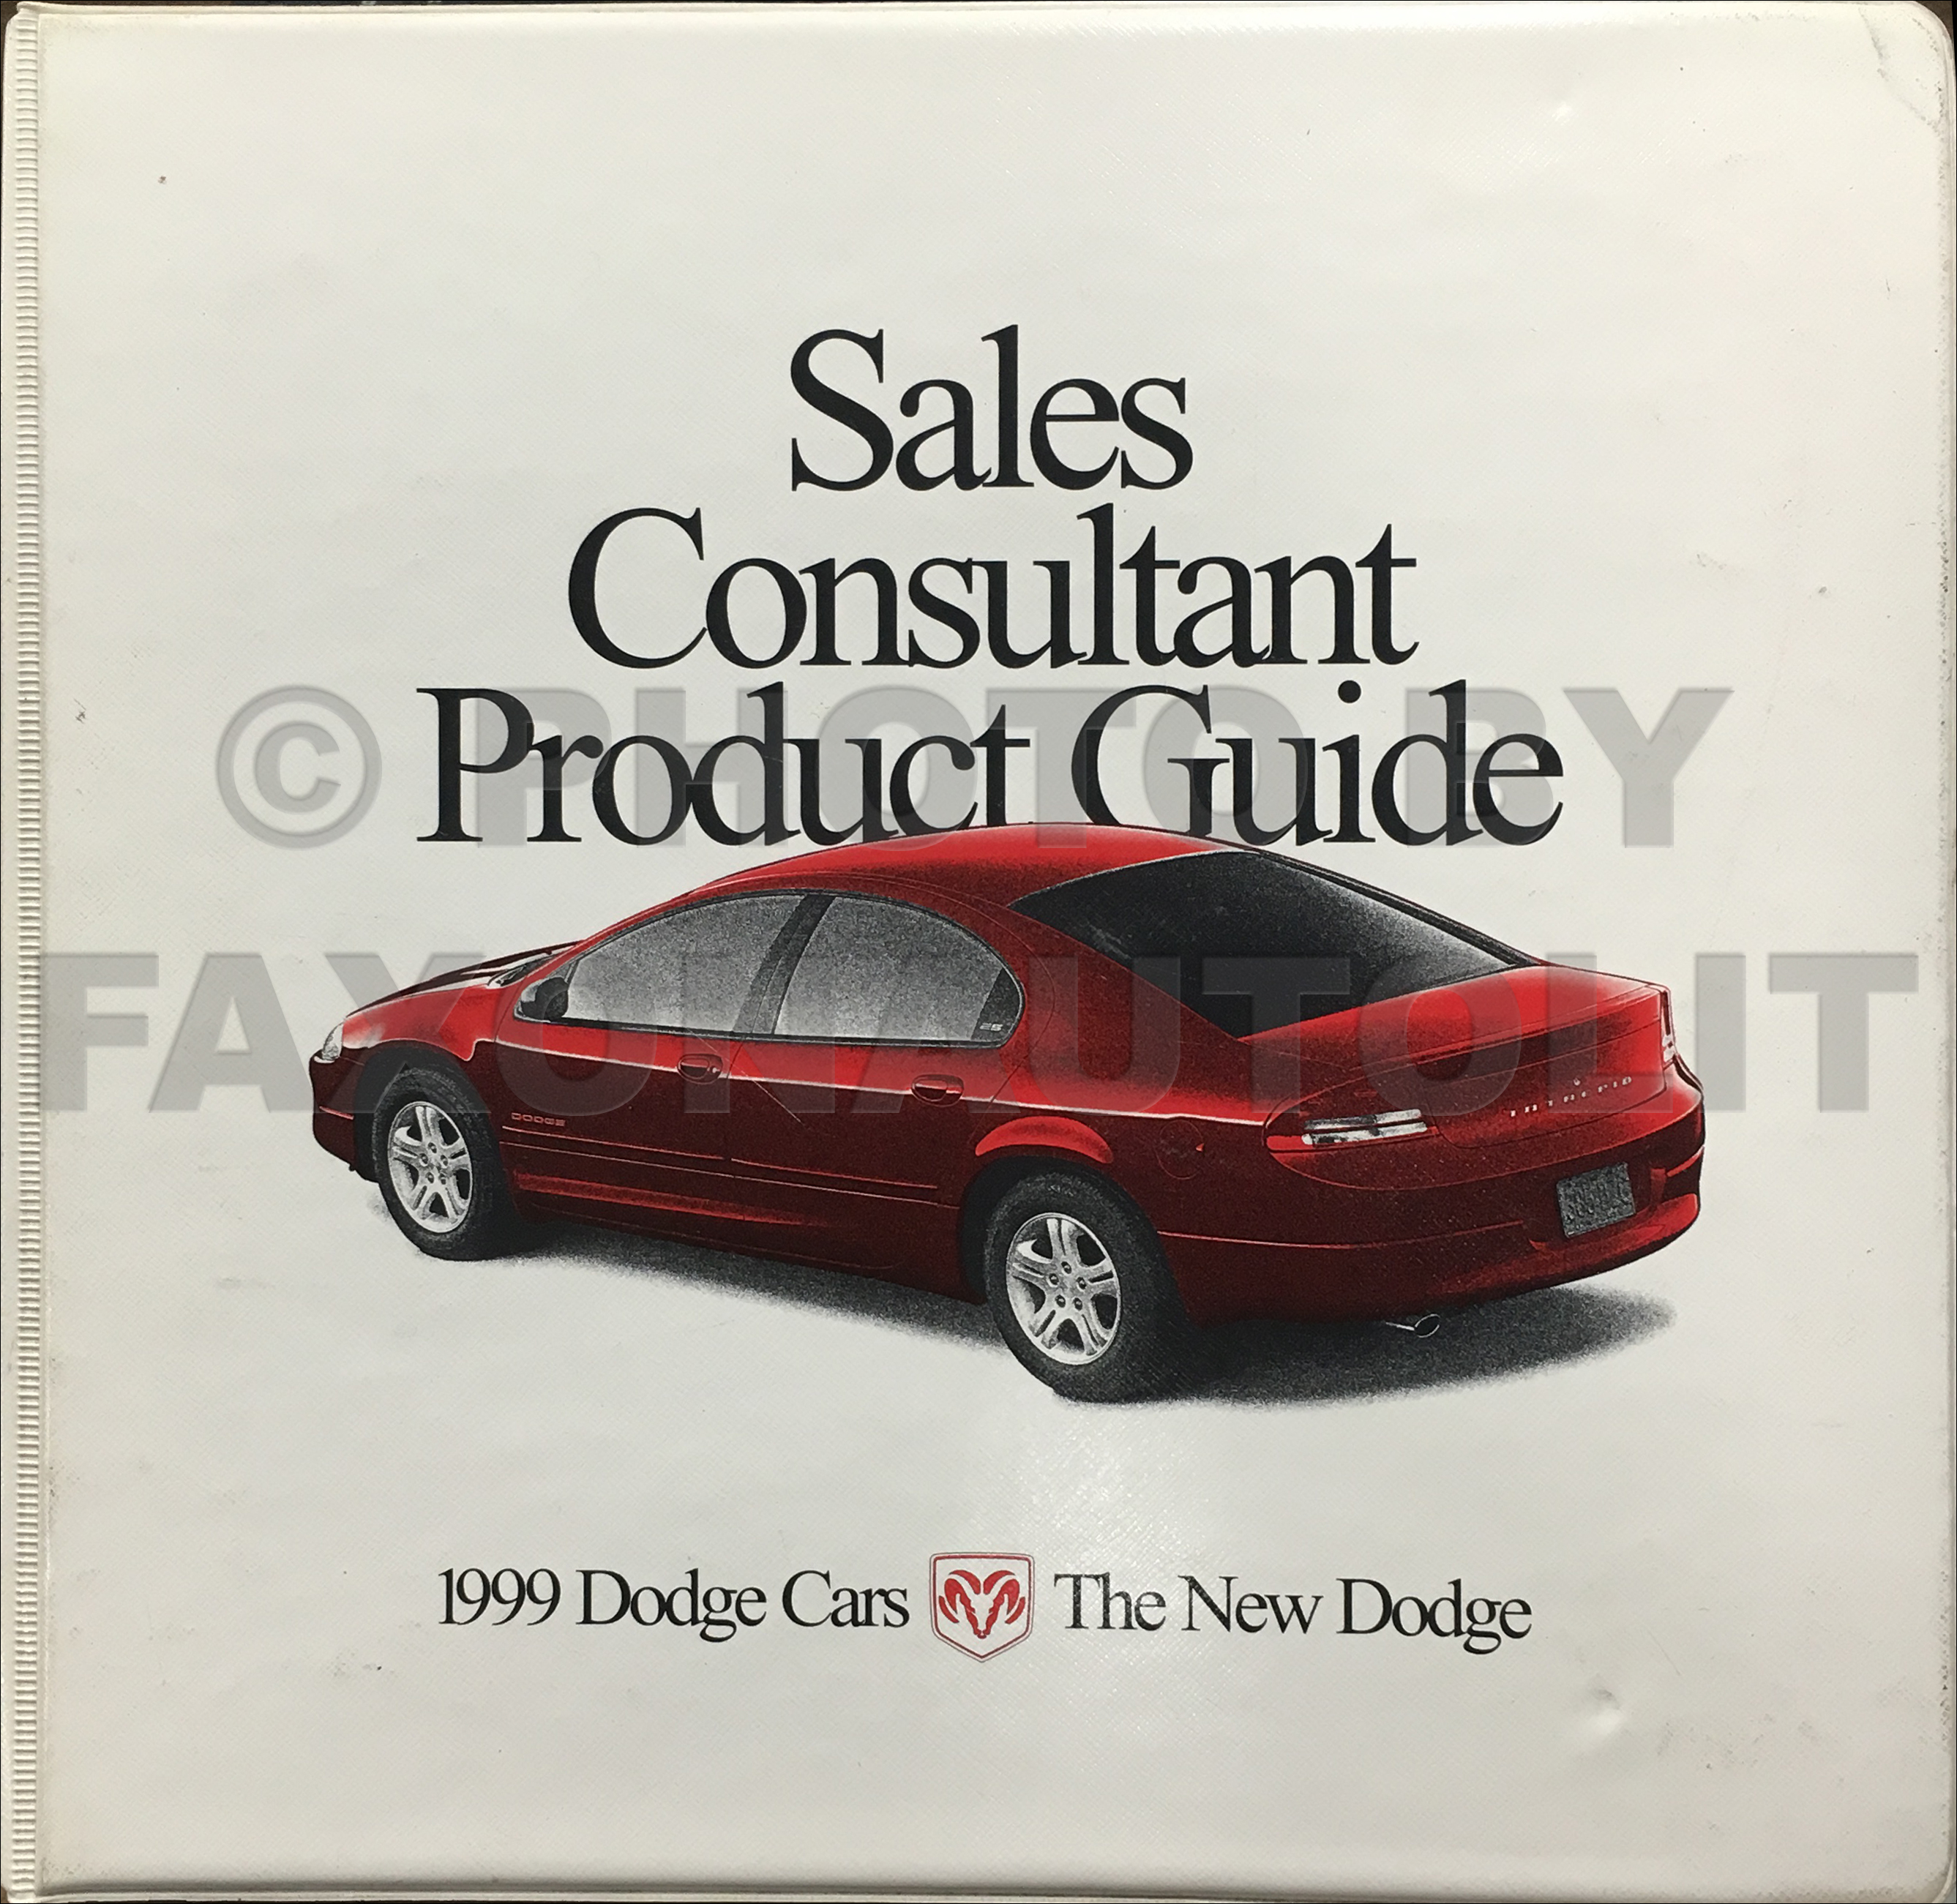 1999 Dodge Car Sales Consultant Product Guide Original